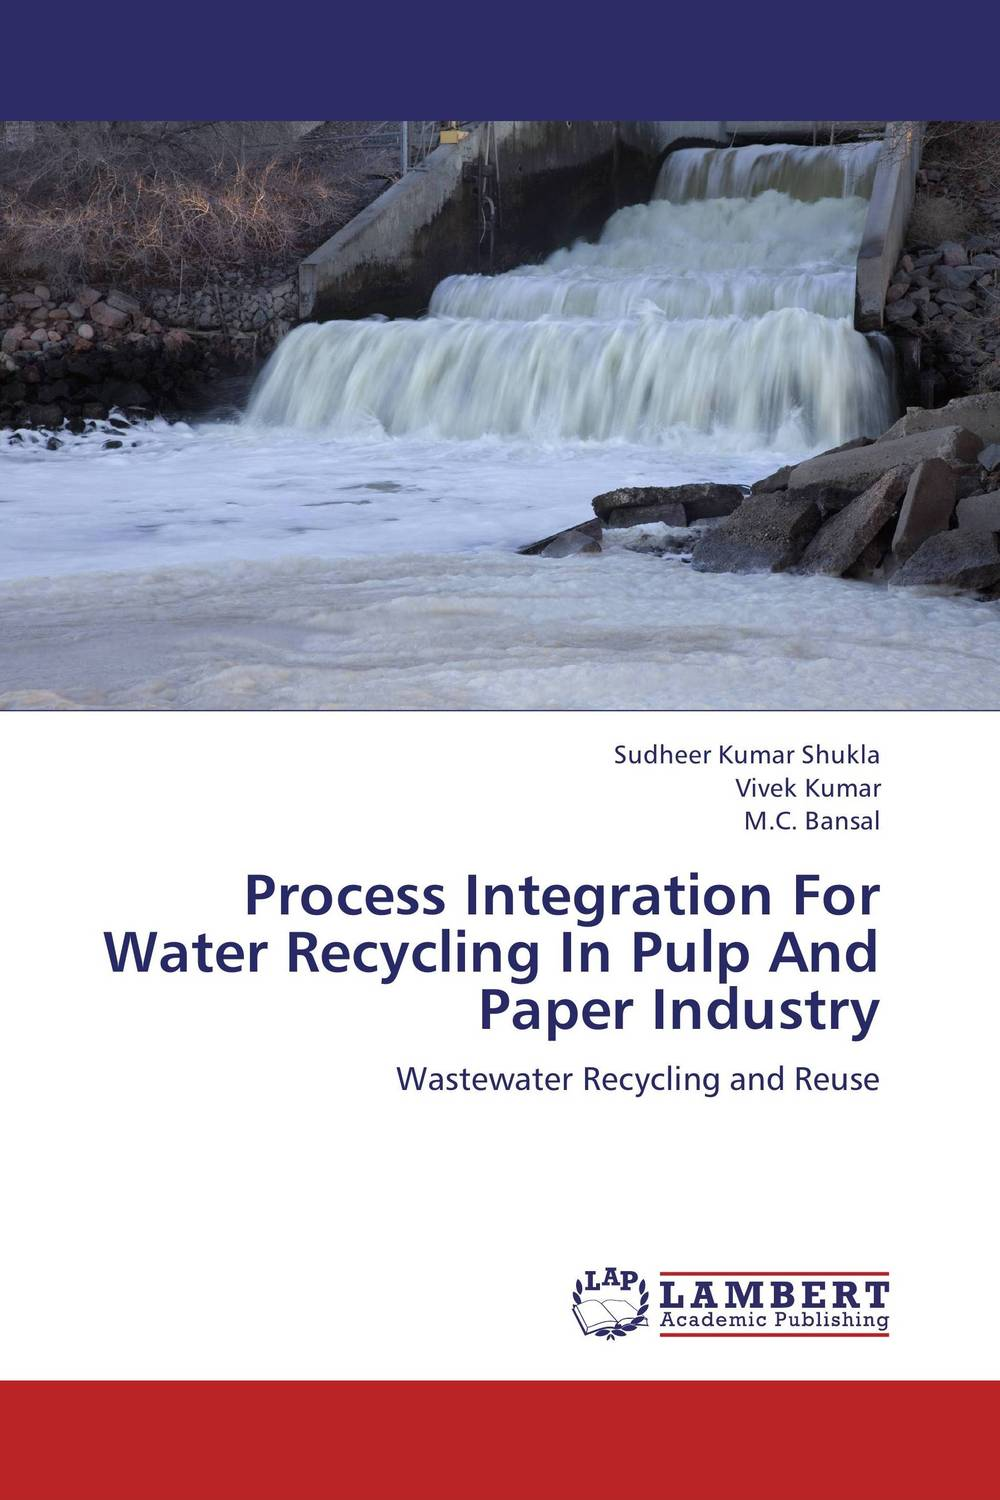 Process Integration For Water Recycling In Pulp And Paper Industry recycle and reuse of waste water for a railway station